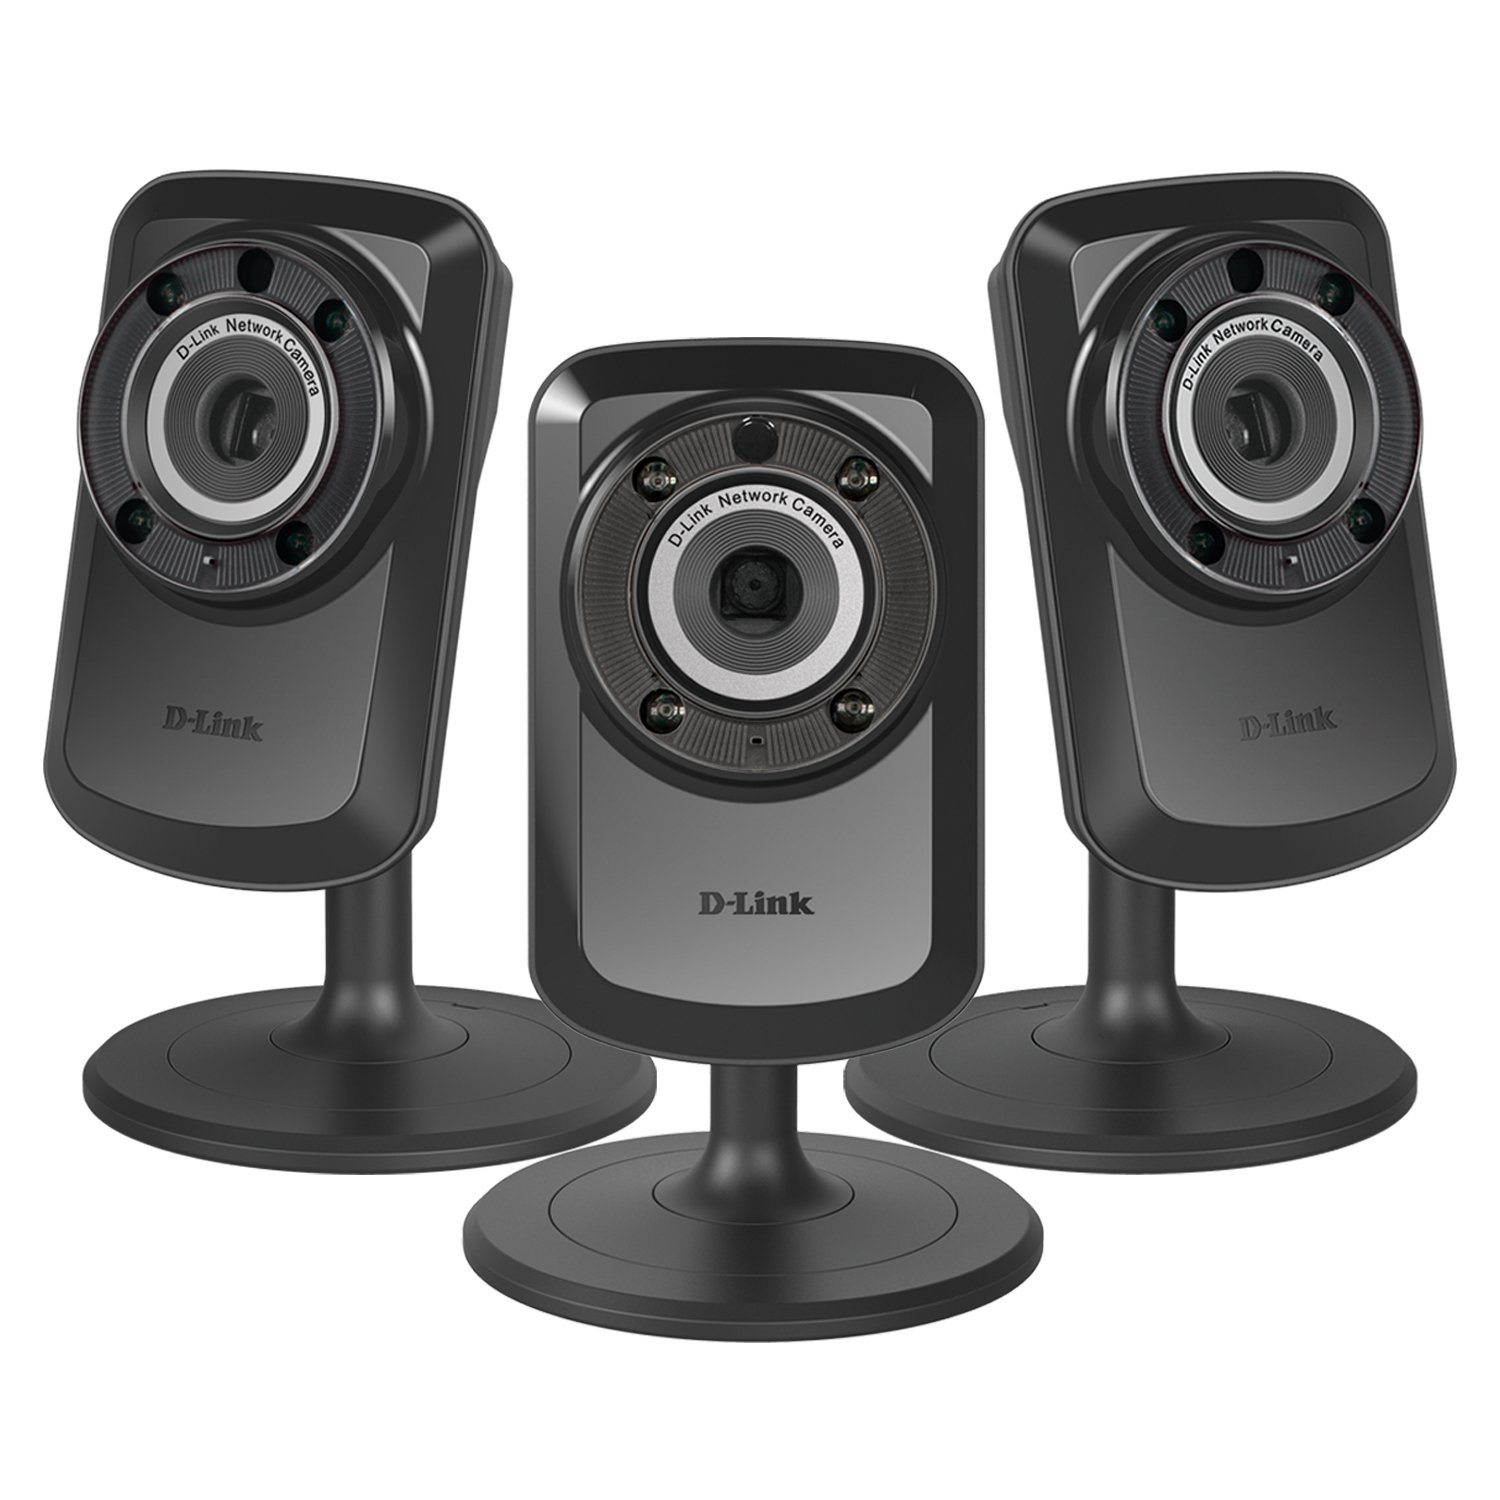 D-Link Wireless Day/Night WiFi Network Surveillance Camera &Remote View DCS-934L hd cvi camera systems 1 0mp 720p 42pcs ir led 2 8 12mm lens security camera system outdoor night vision camera surveillance